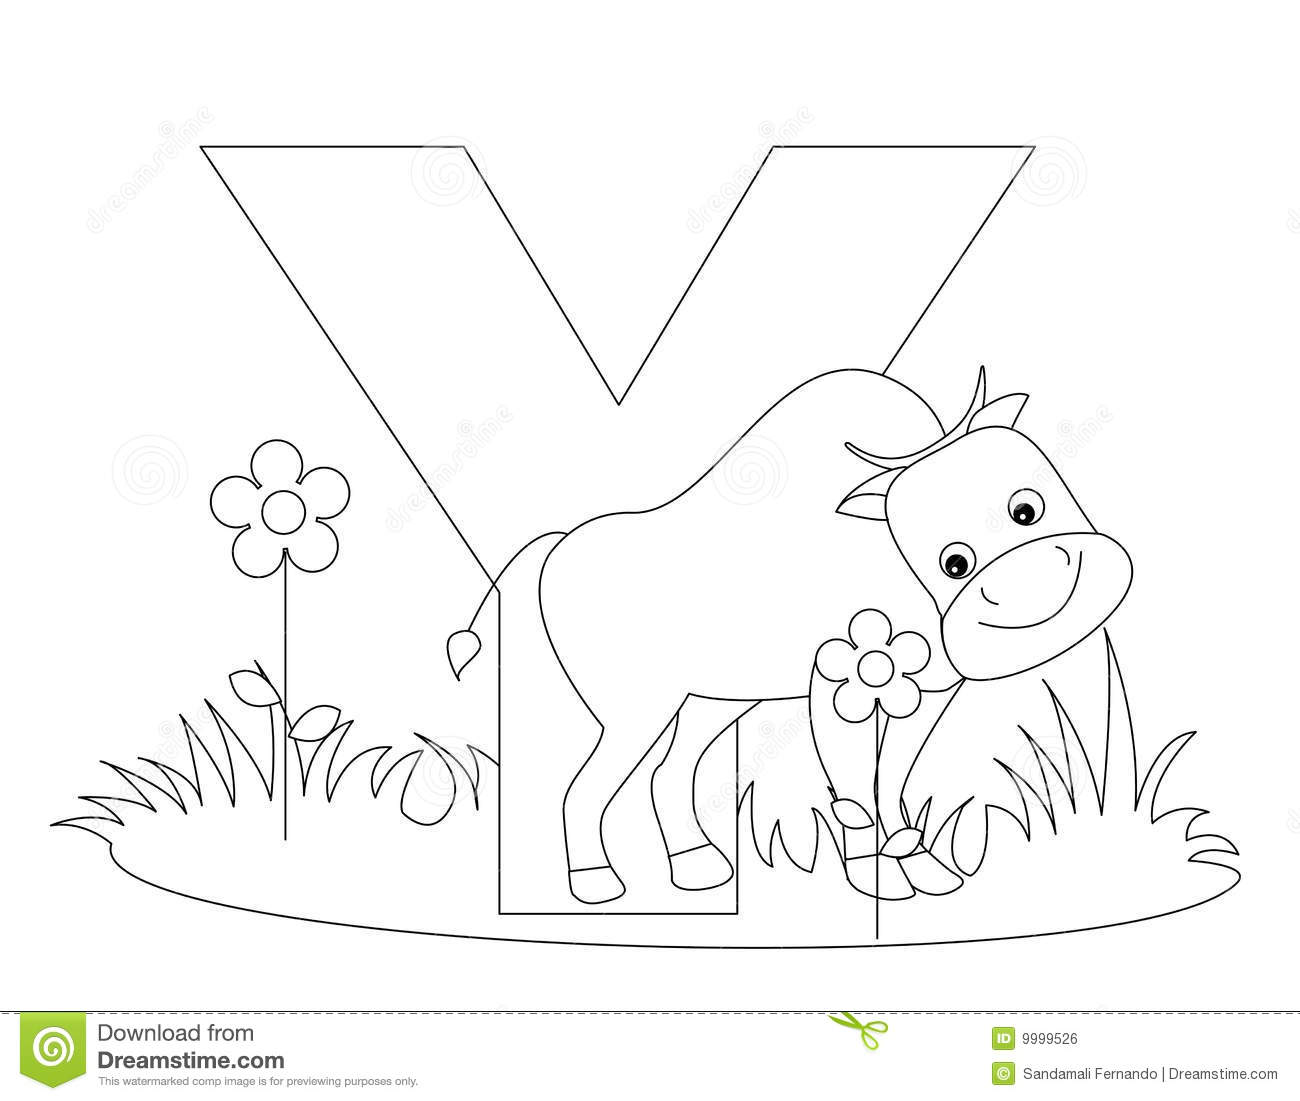 Images of letter a animal coloring pages sabadaphnecottage